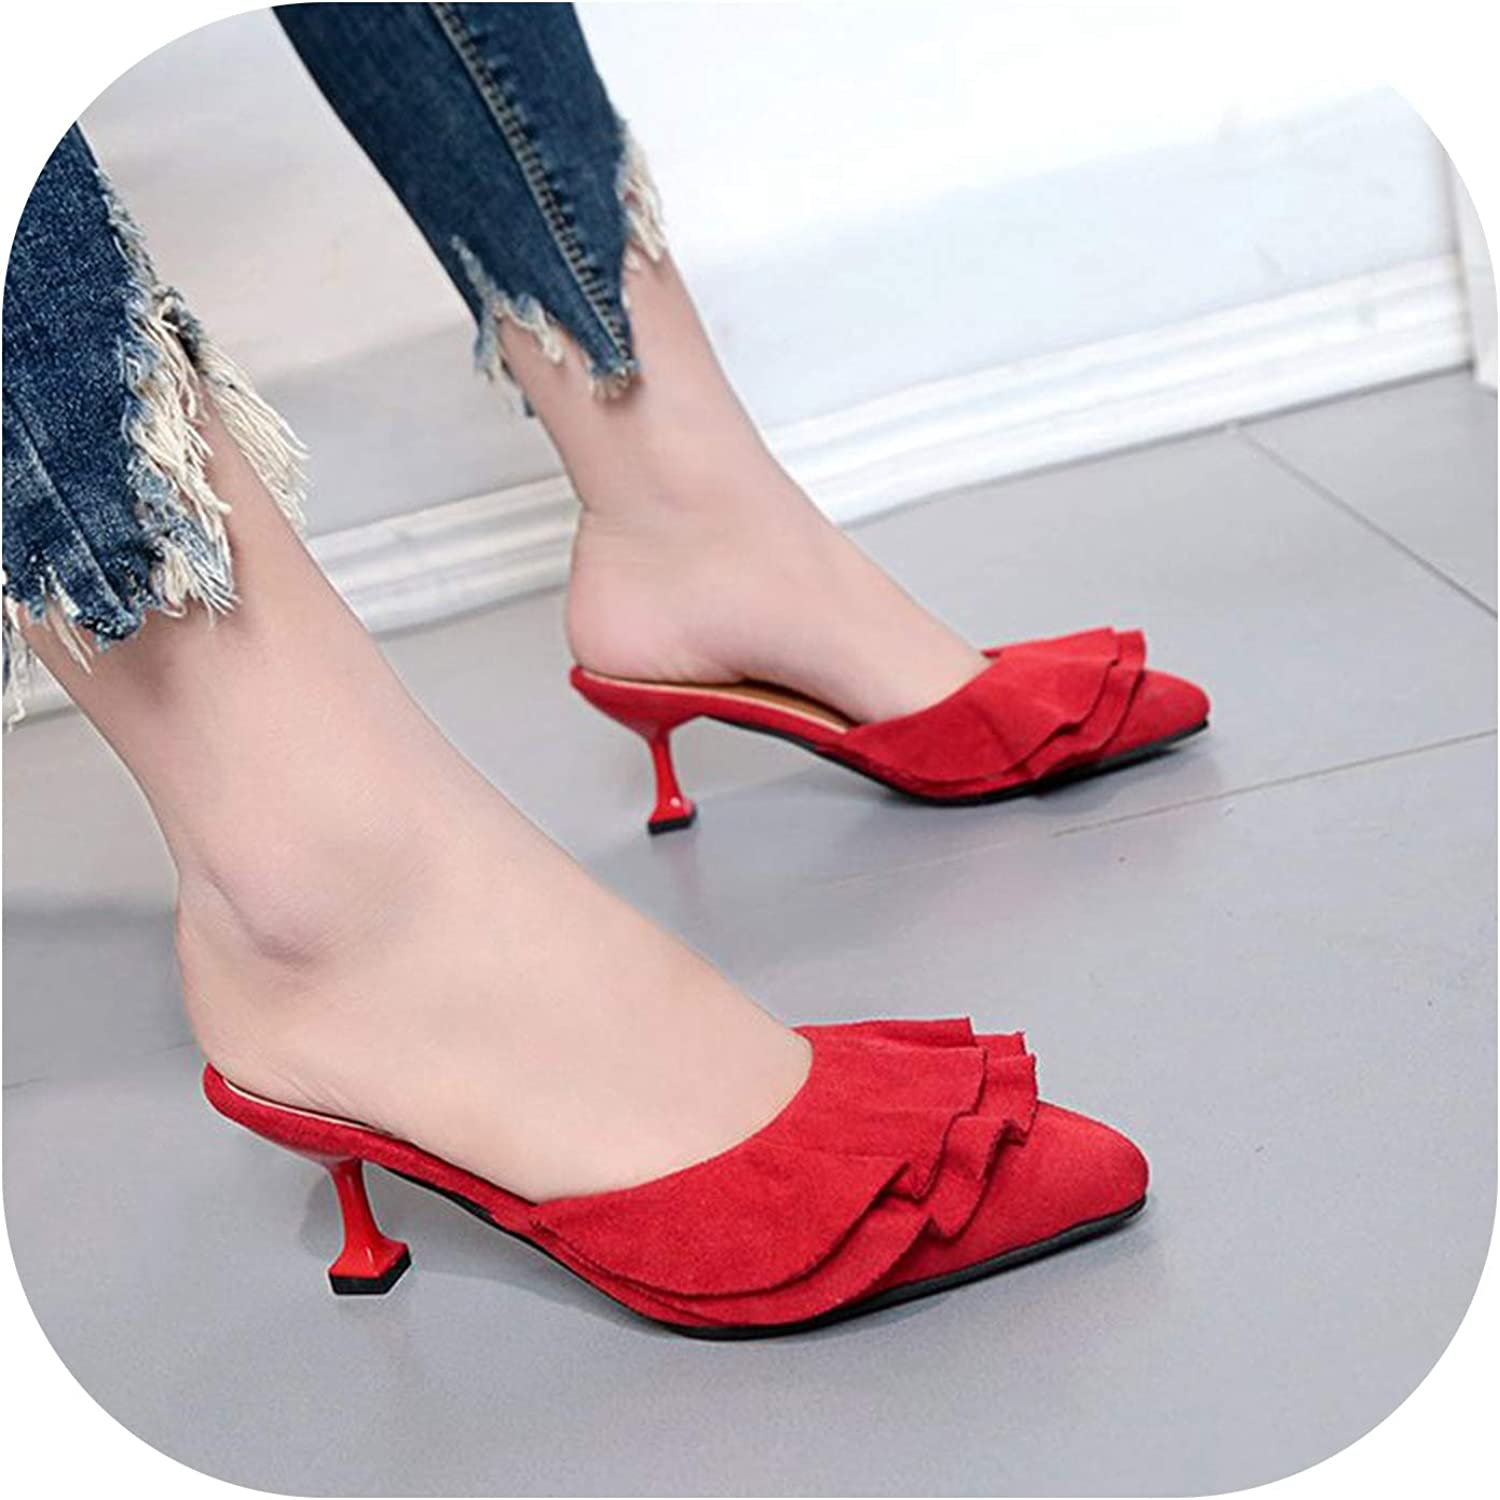 6443040bd8 Sweetest-Thing Pointed Mule Slippers,Woman Flounce Middle Heel Slippers  Shallow Out Sandals Pointed